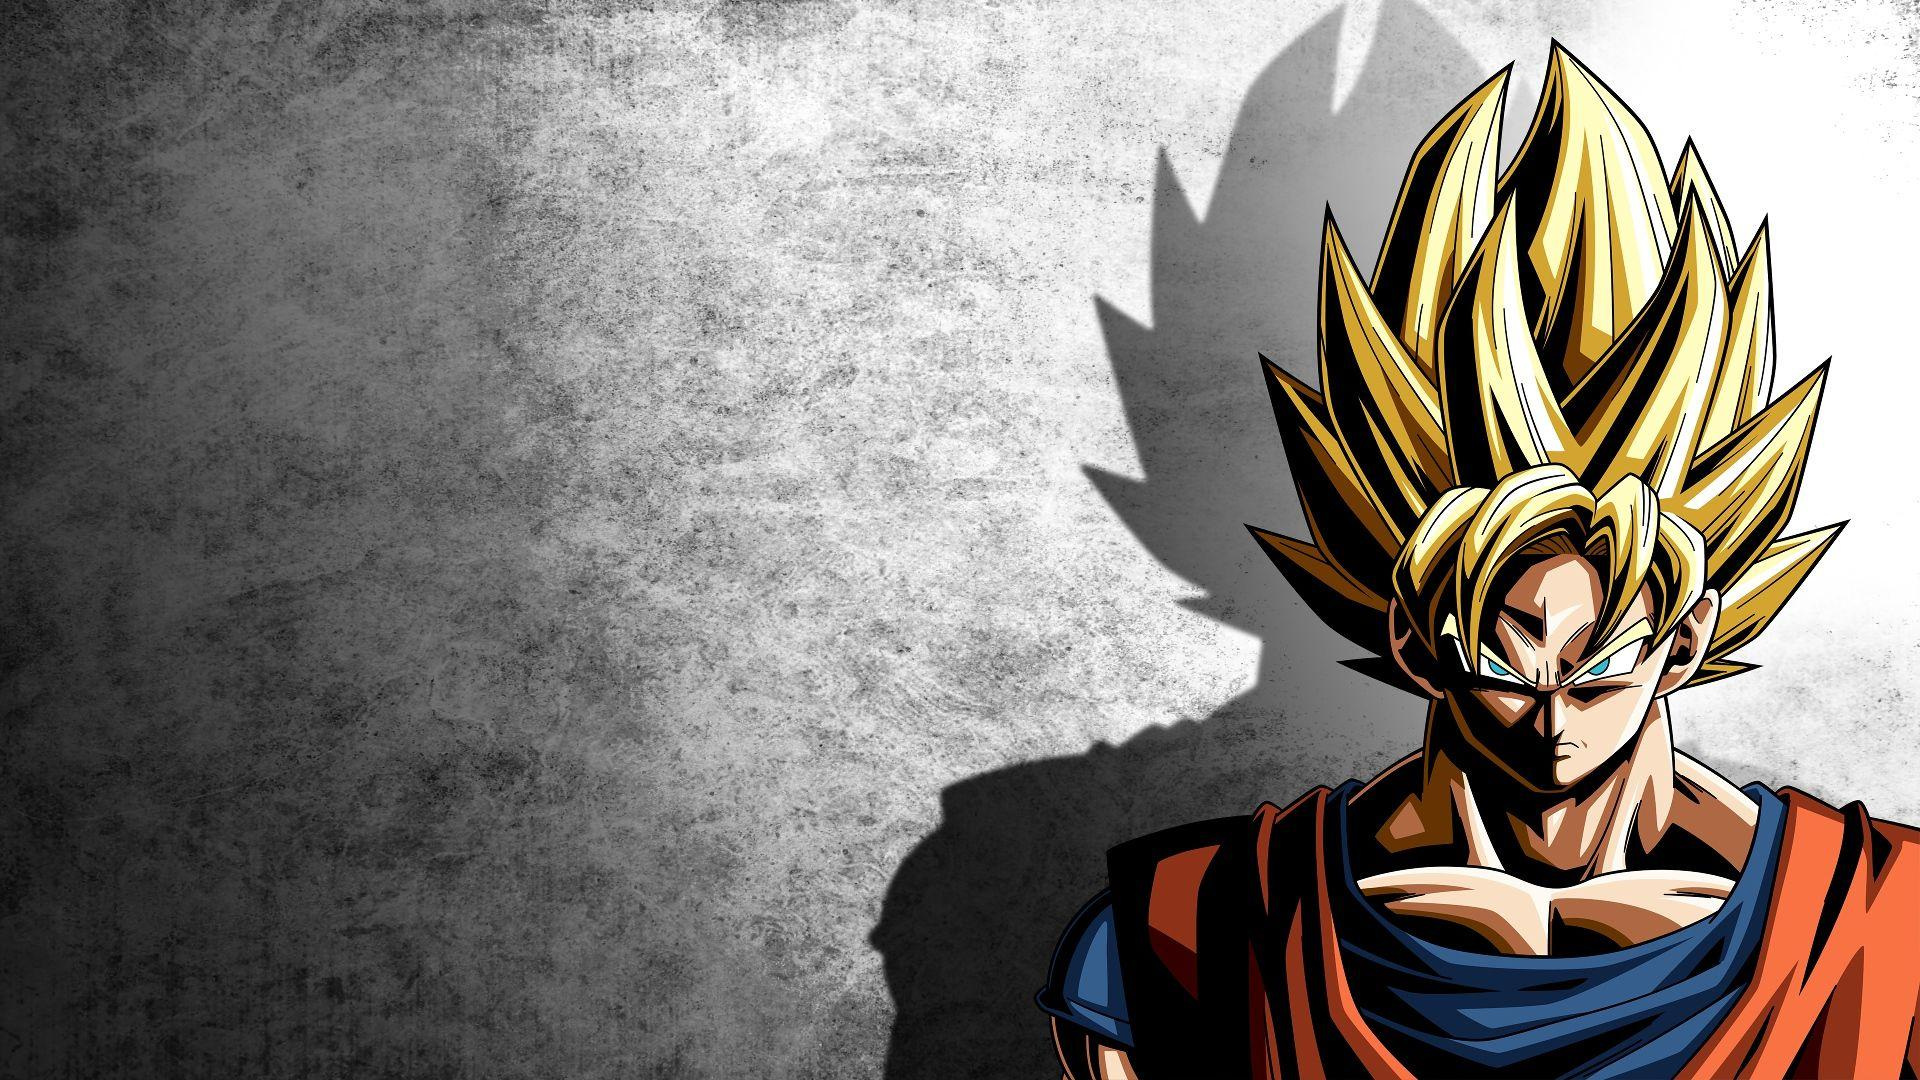 Son Goku Wallpapers Hd Wallpaper Cave